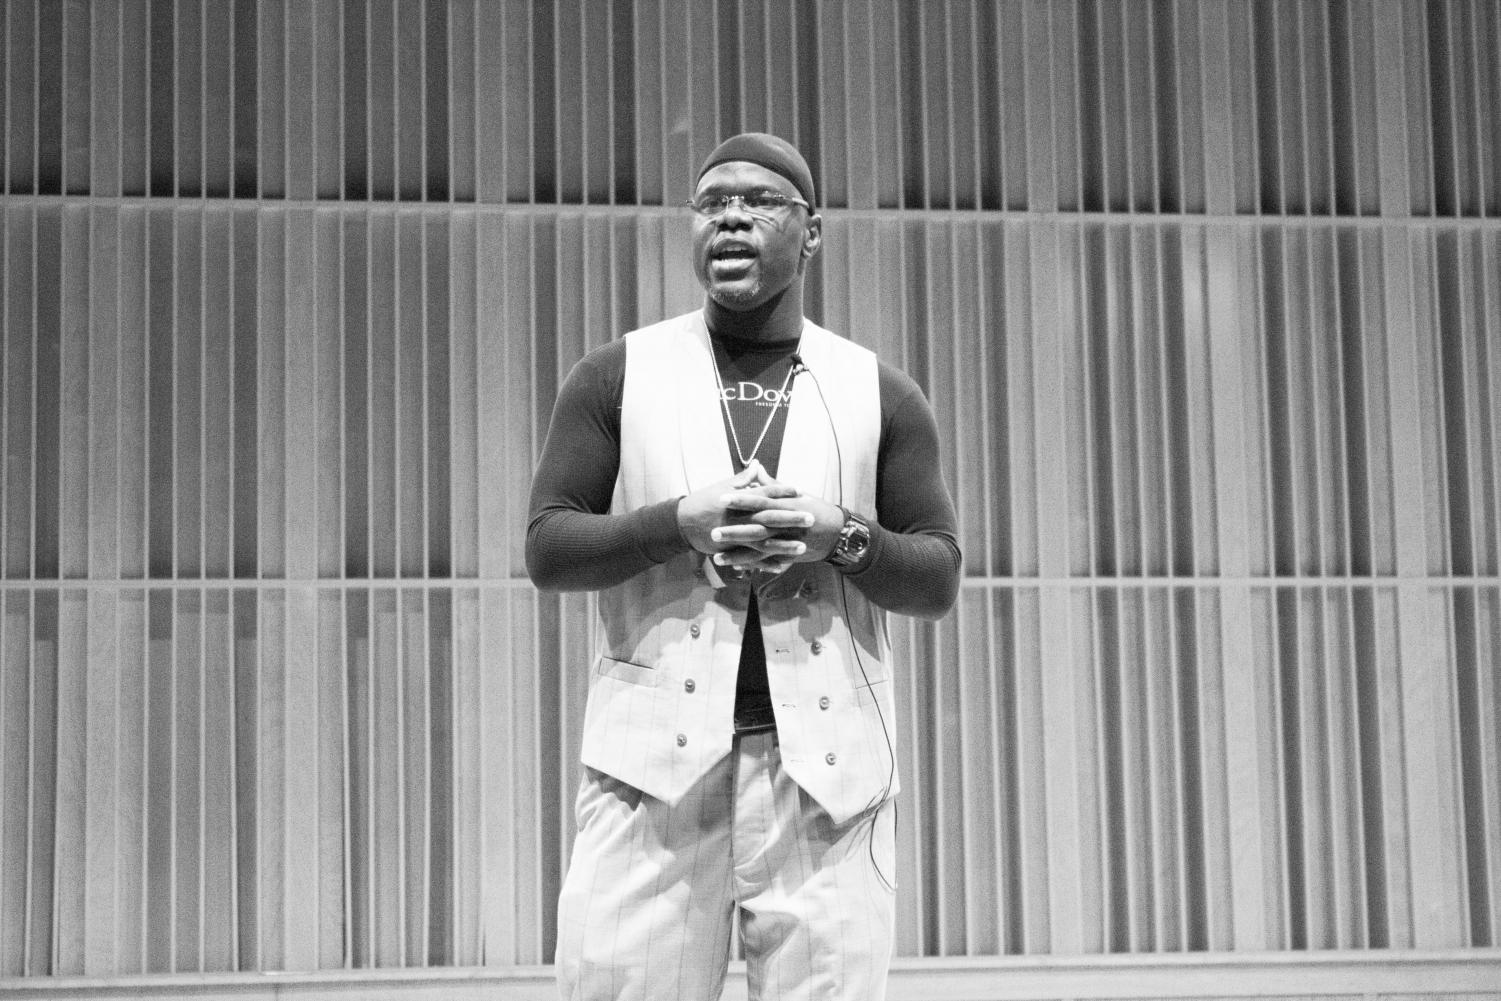 FREE TO SPEAK HIS MIND: Ian Manuel discusses his poetry and life experiences in prison with students and faculty in Recital Hall.